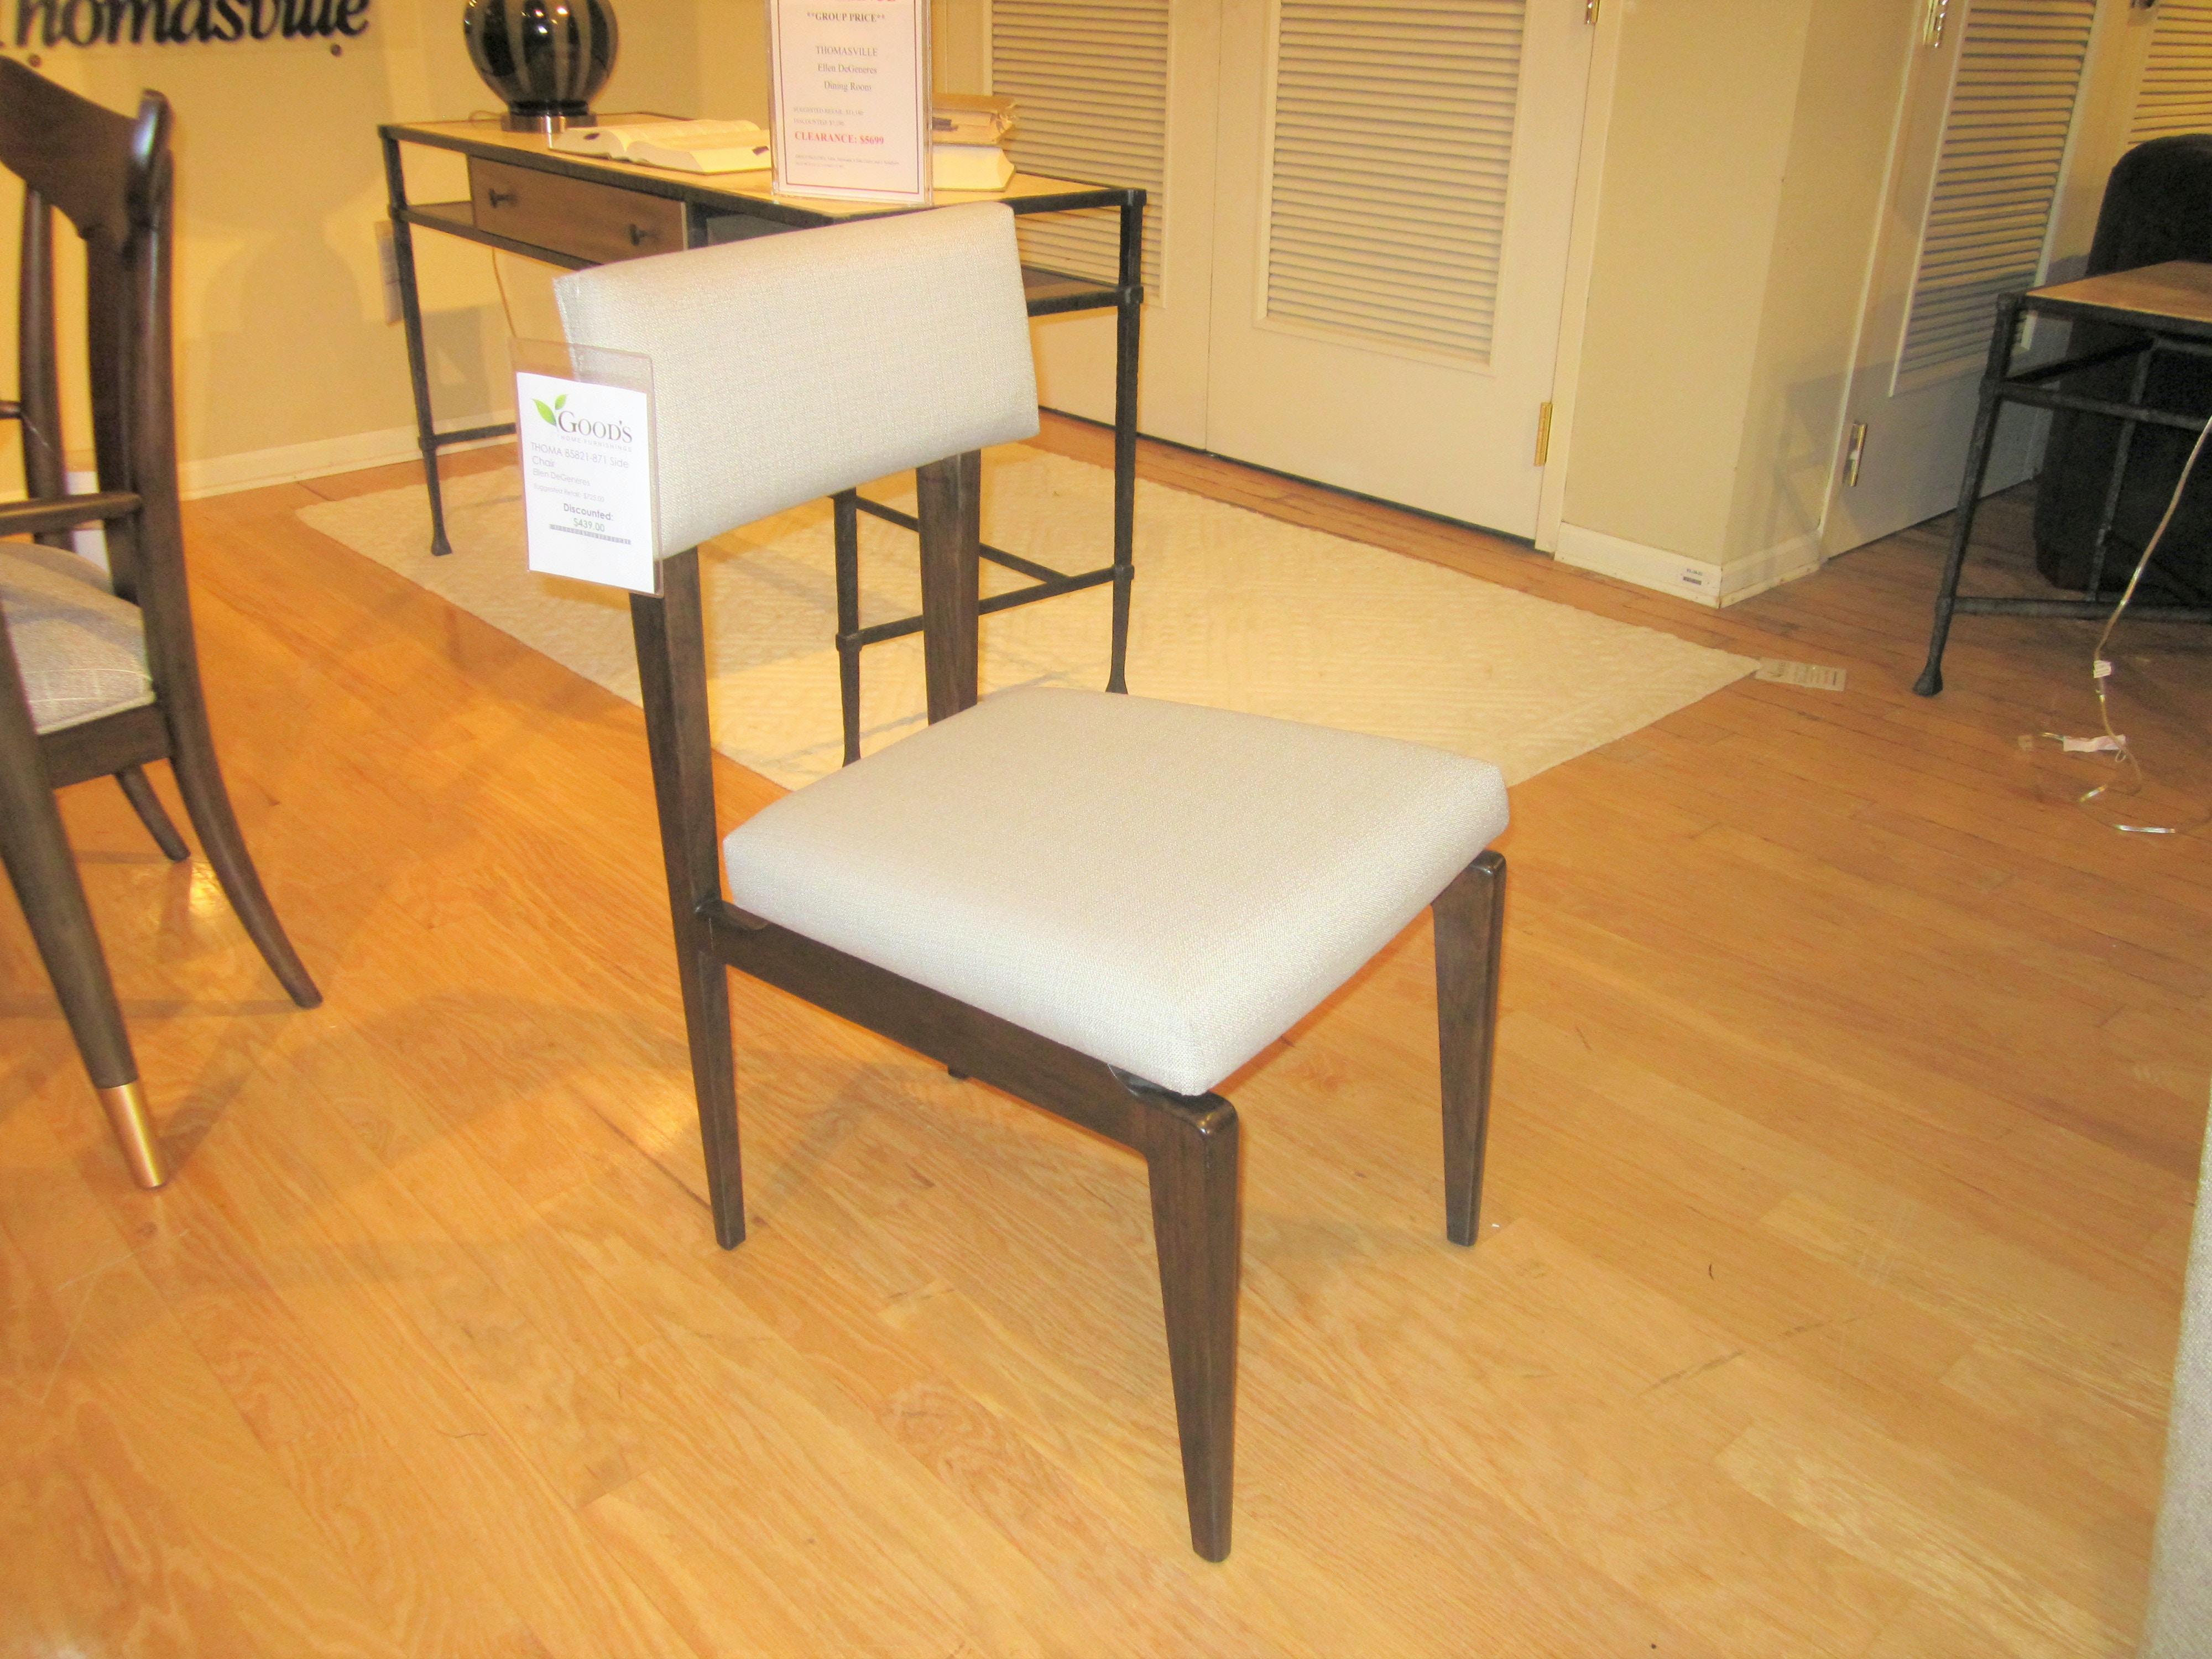 Superieur 85821 871 Clearance Thomasville Furniture Ellen Degeneres Side Chair Goods  Clearance In Hickory